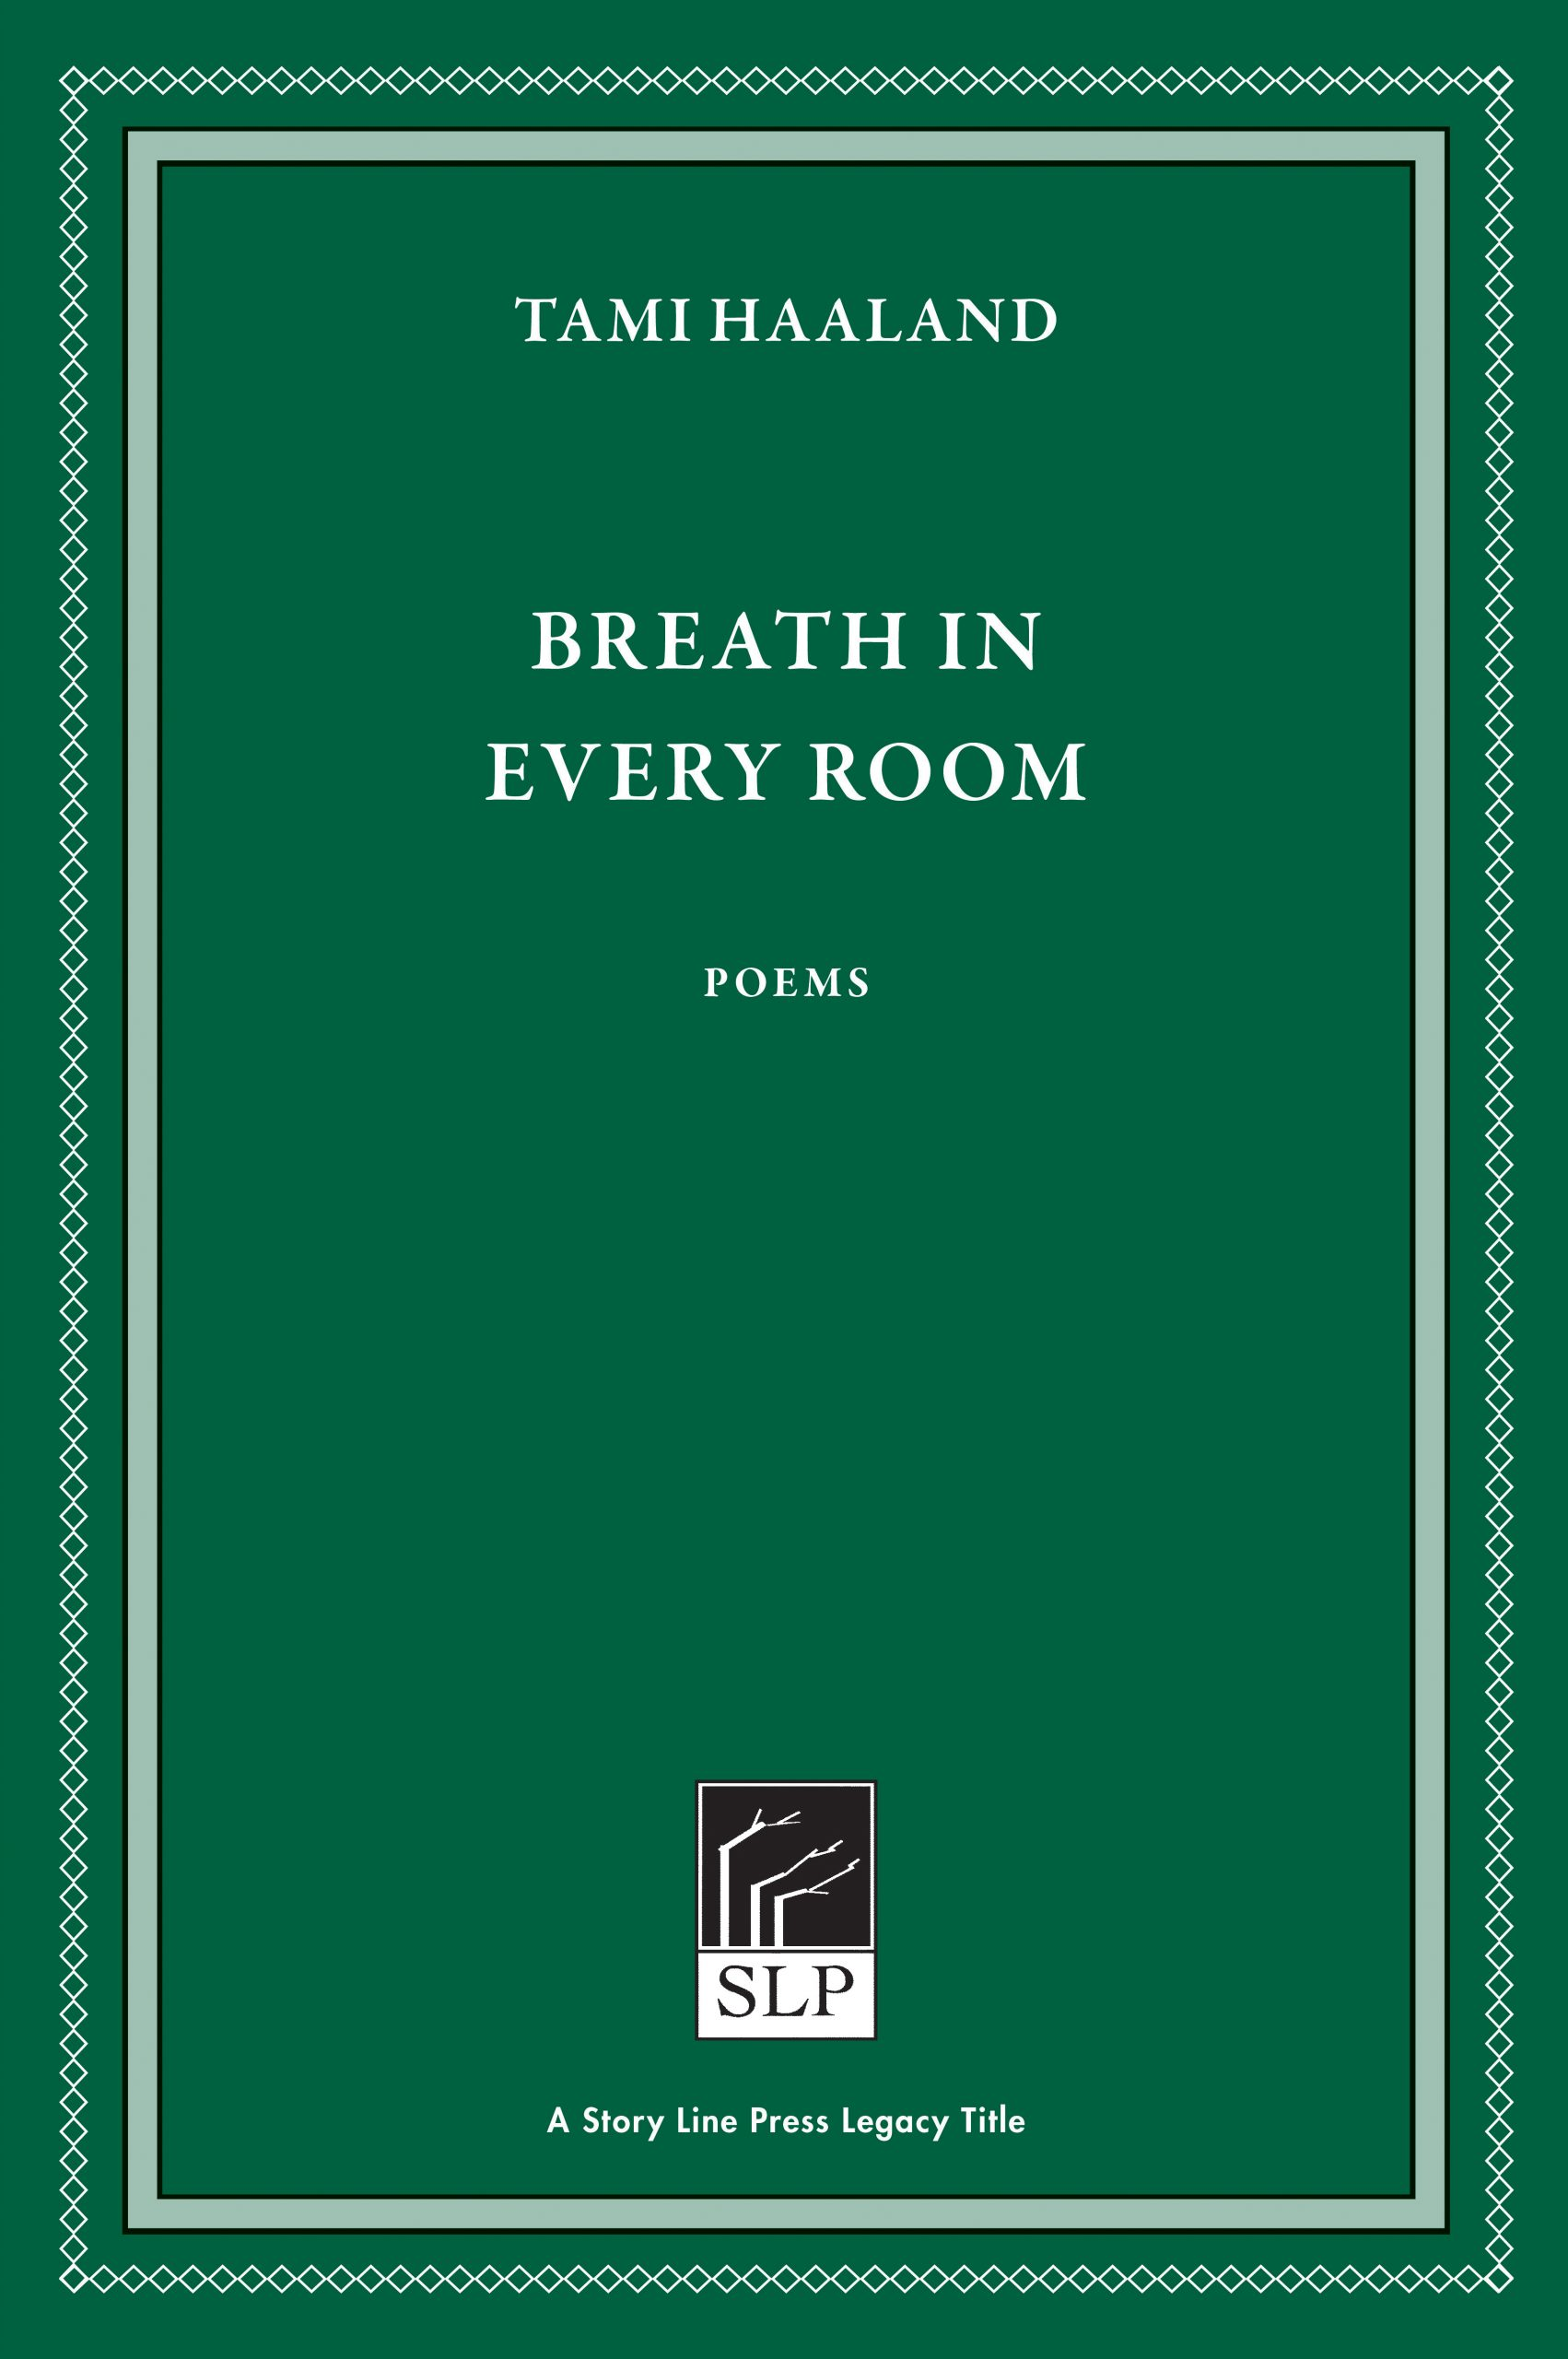 Story Line Press legacy tittle, Tami Haaland Breath in Every Room Poems, white text against emerald green background.